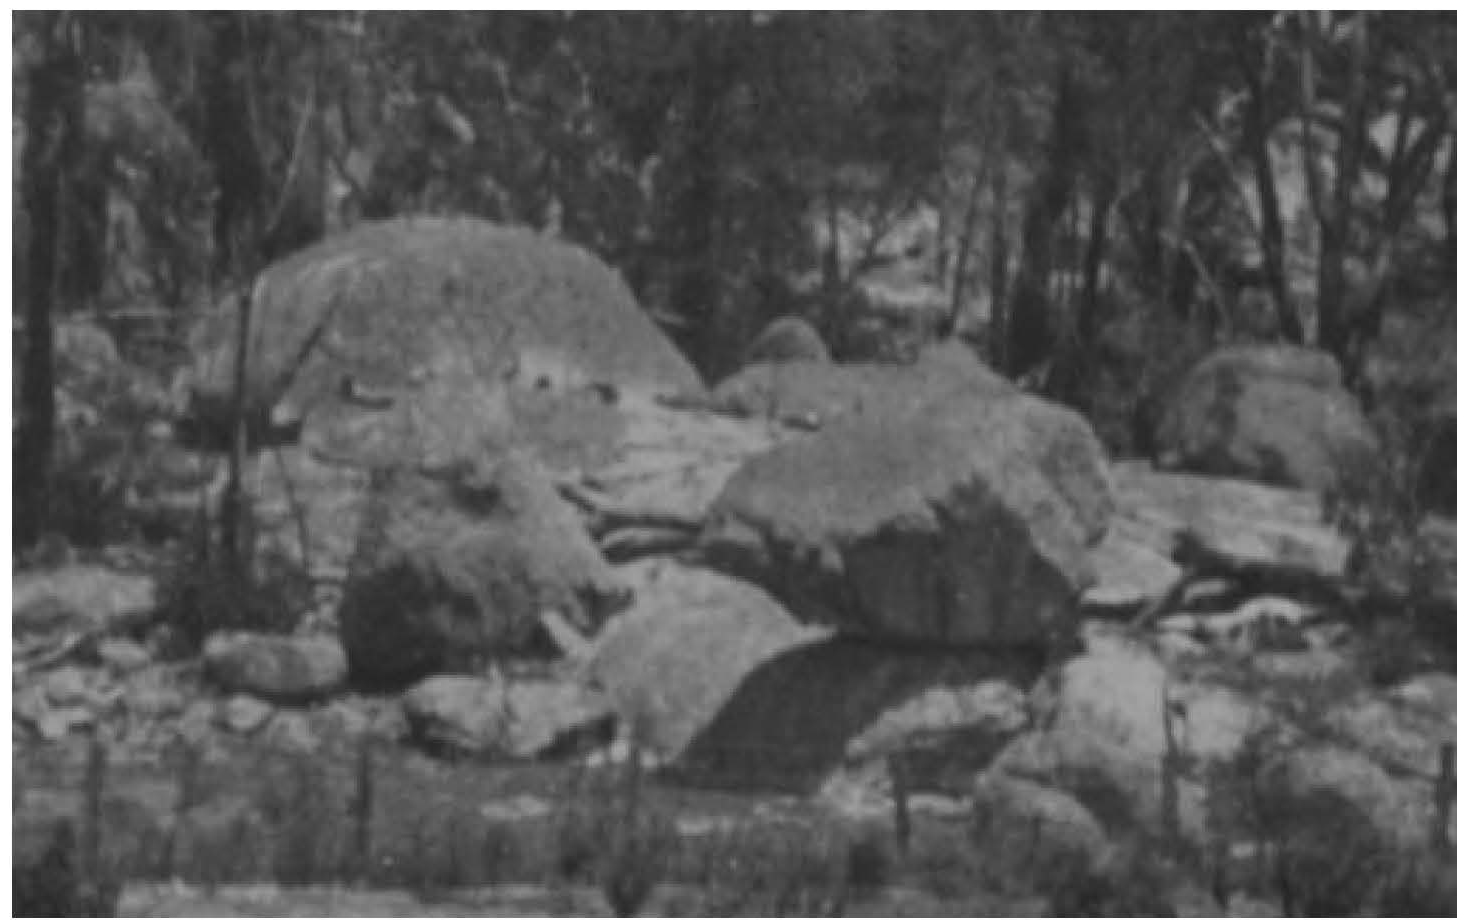 Enlargement of beaked rock